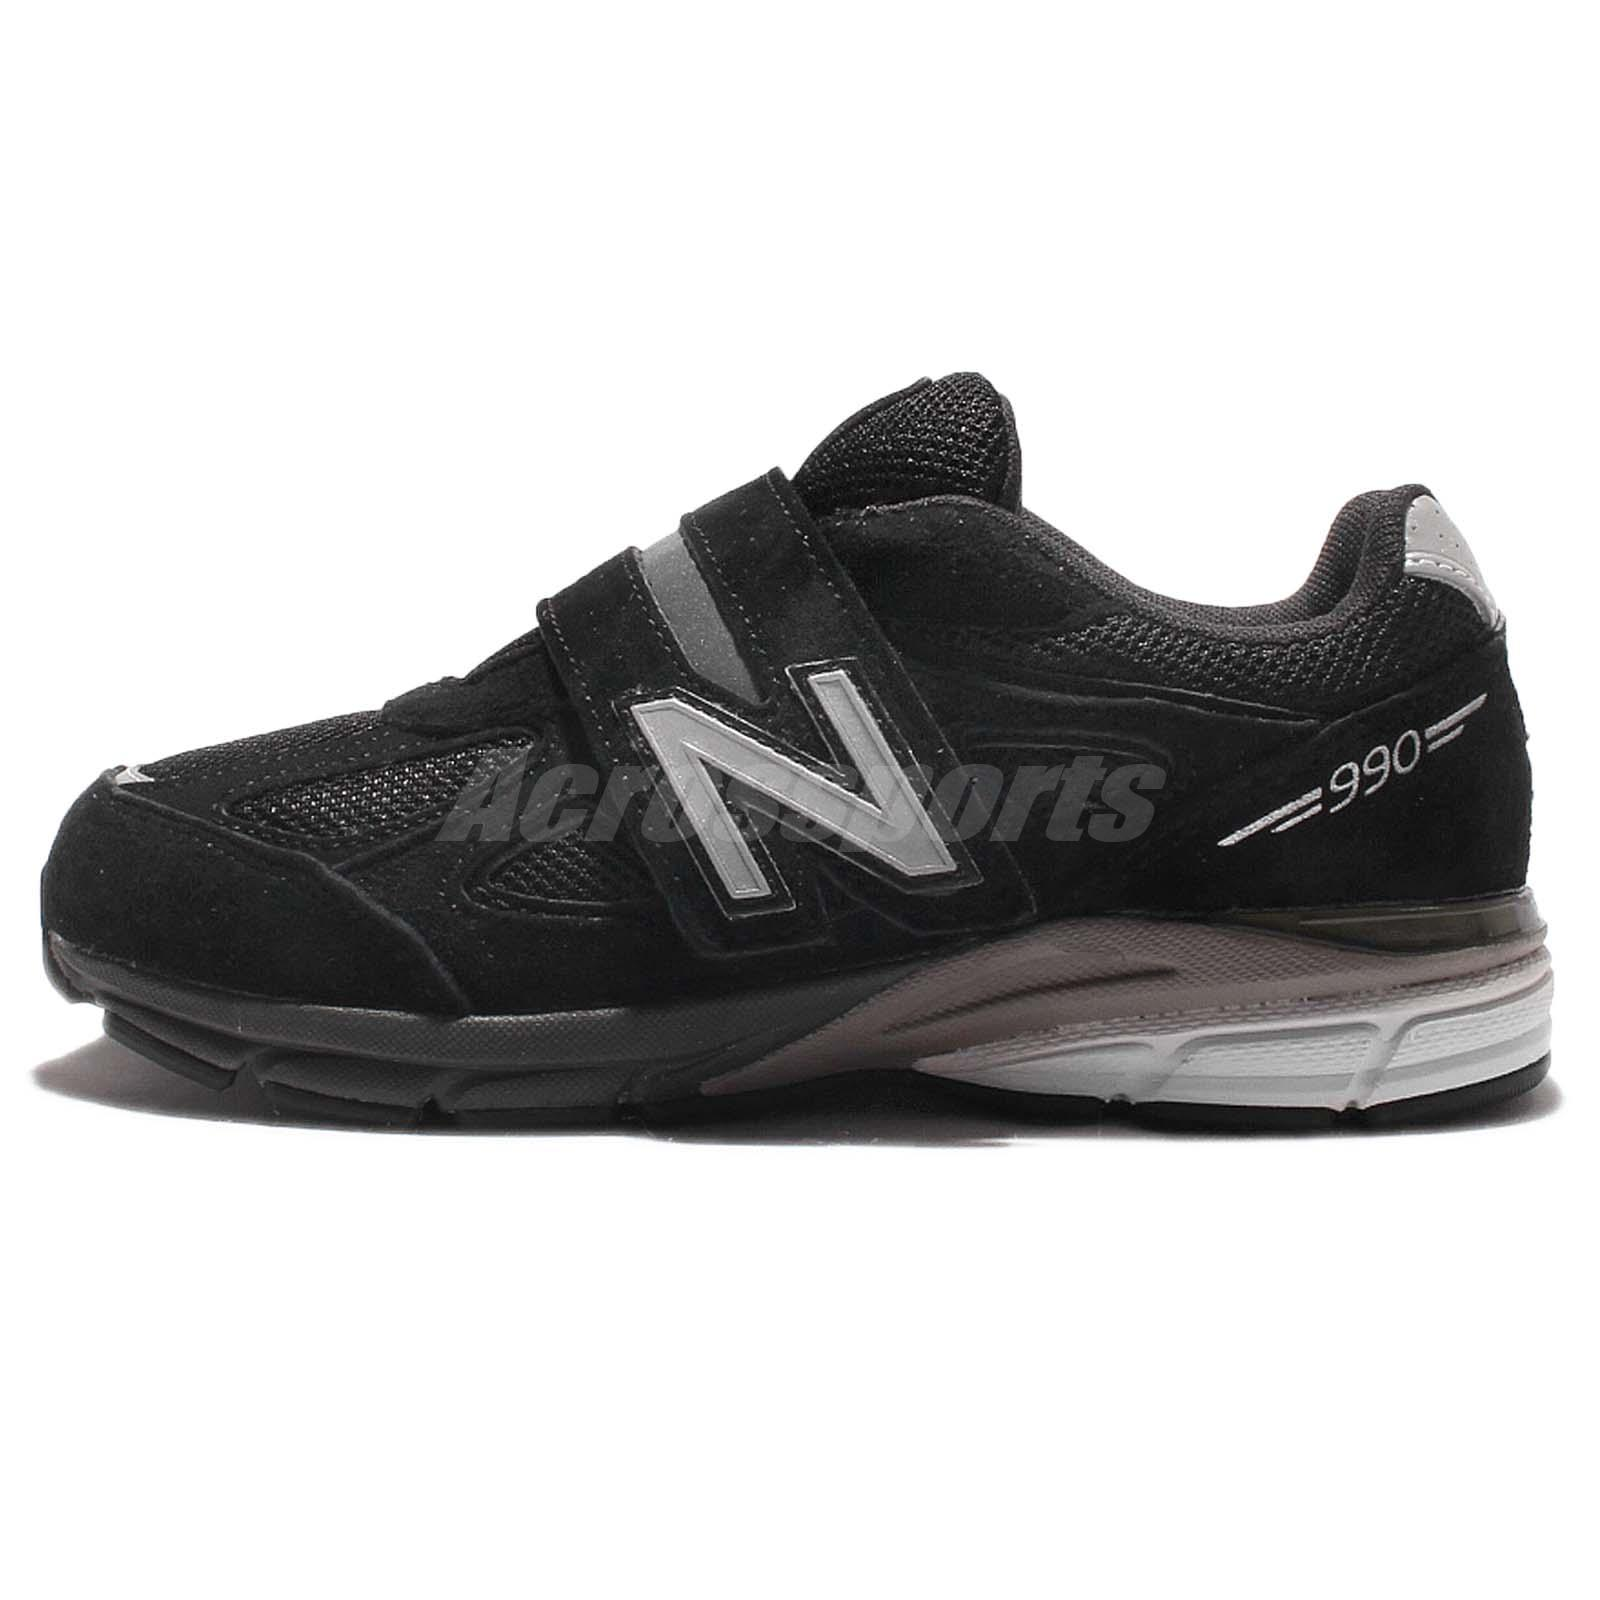 New Balance KV990BSP W Wide Black Kid Youth Running Shoes ...